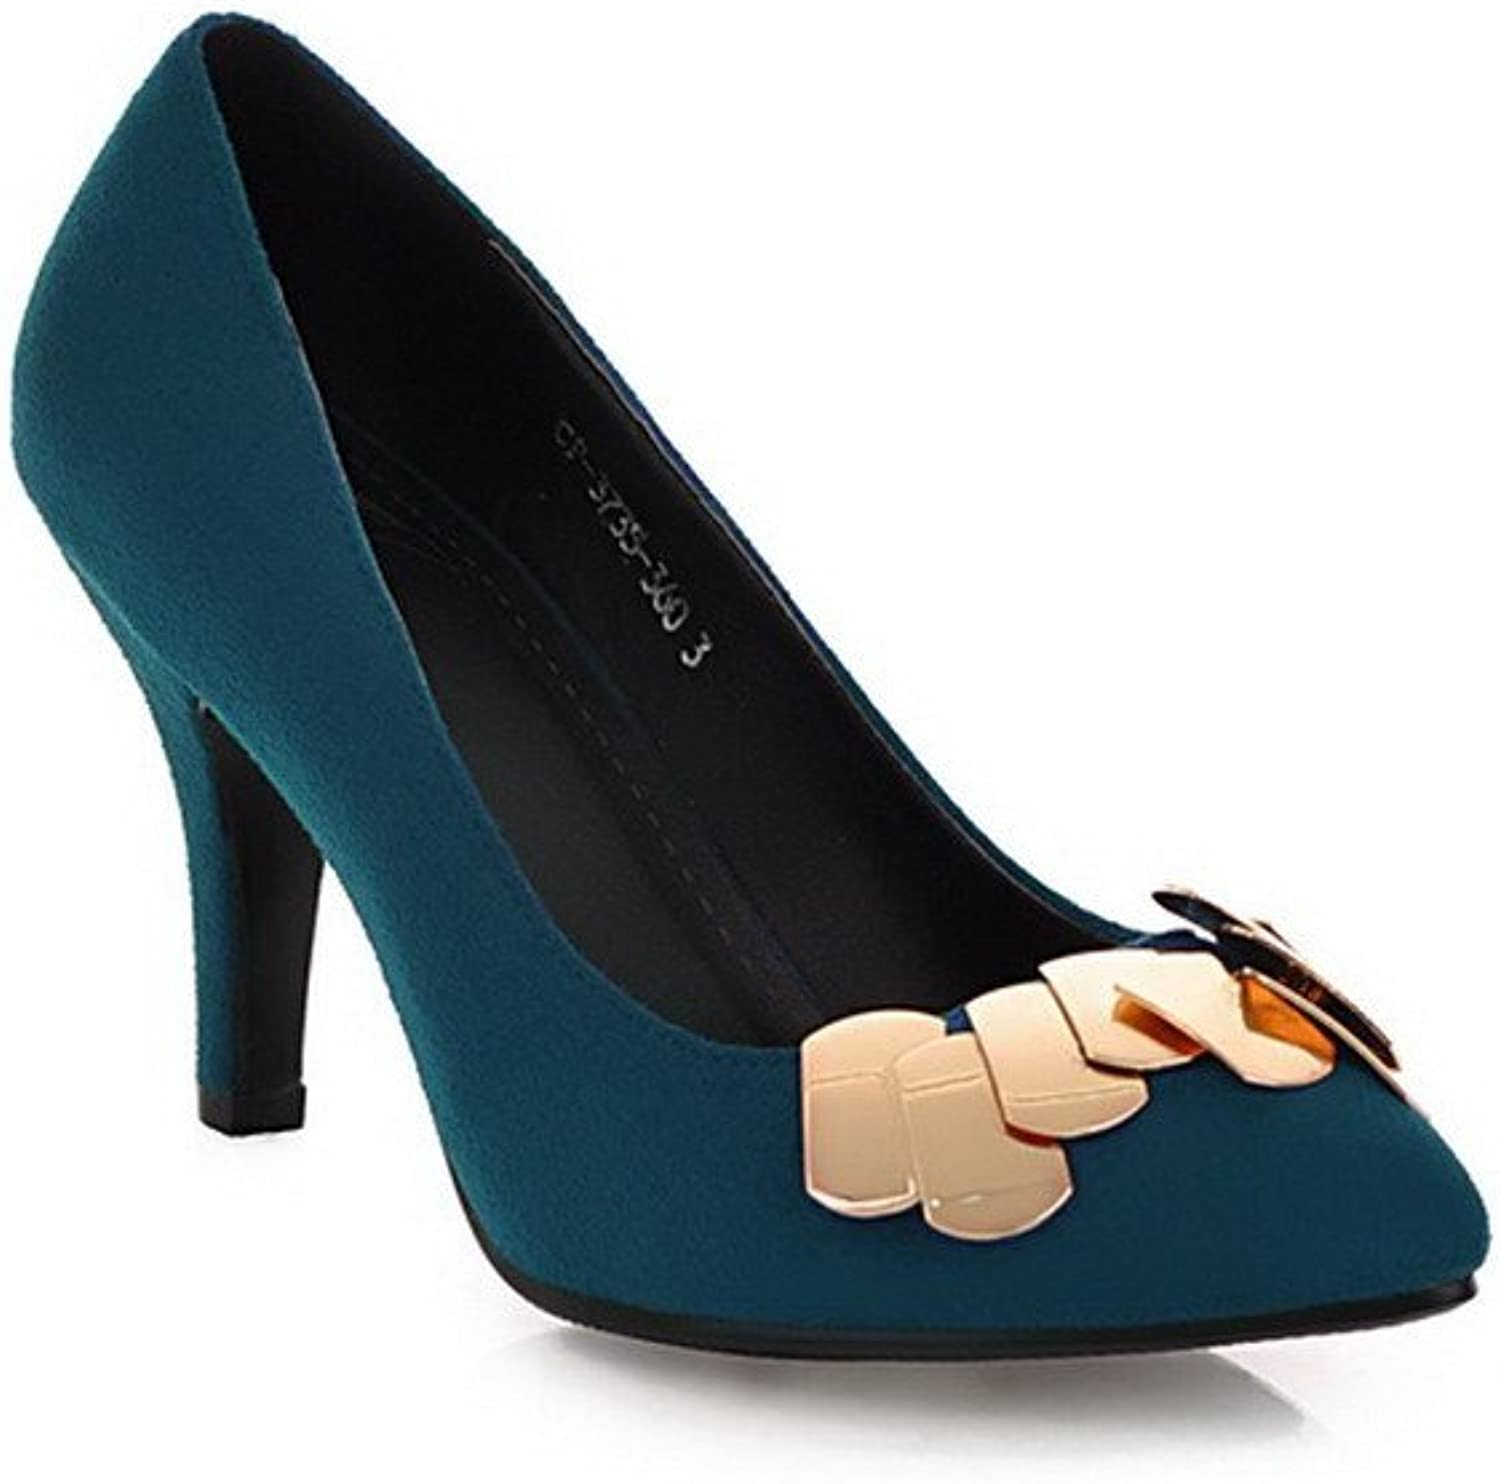 WeiPoot Womens Closed Po2015ted Toe High Heel Frosted PU Solid Pumps with Metalornament, bluee, 10 B(M) US